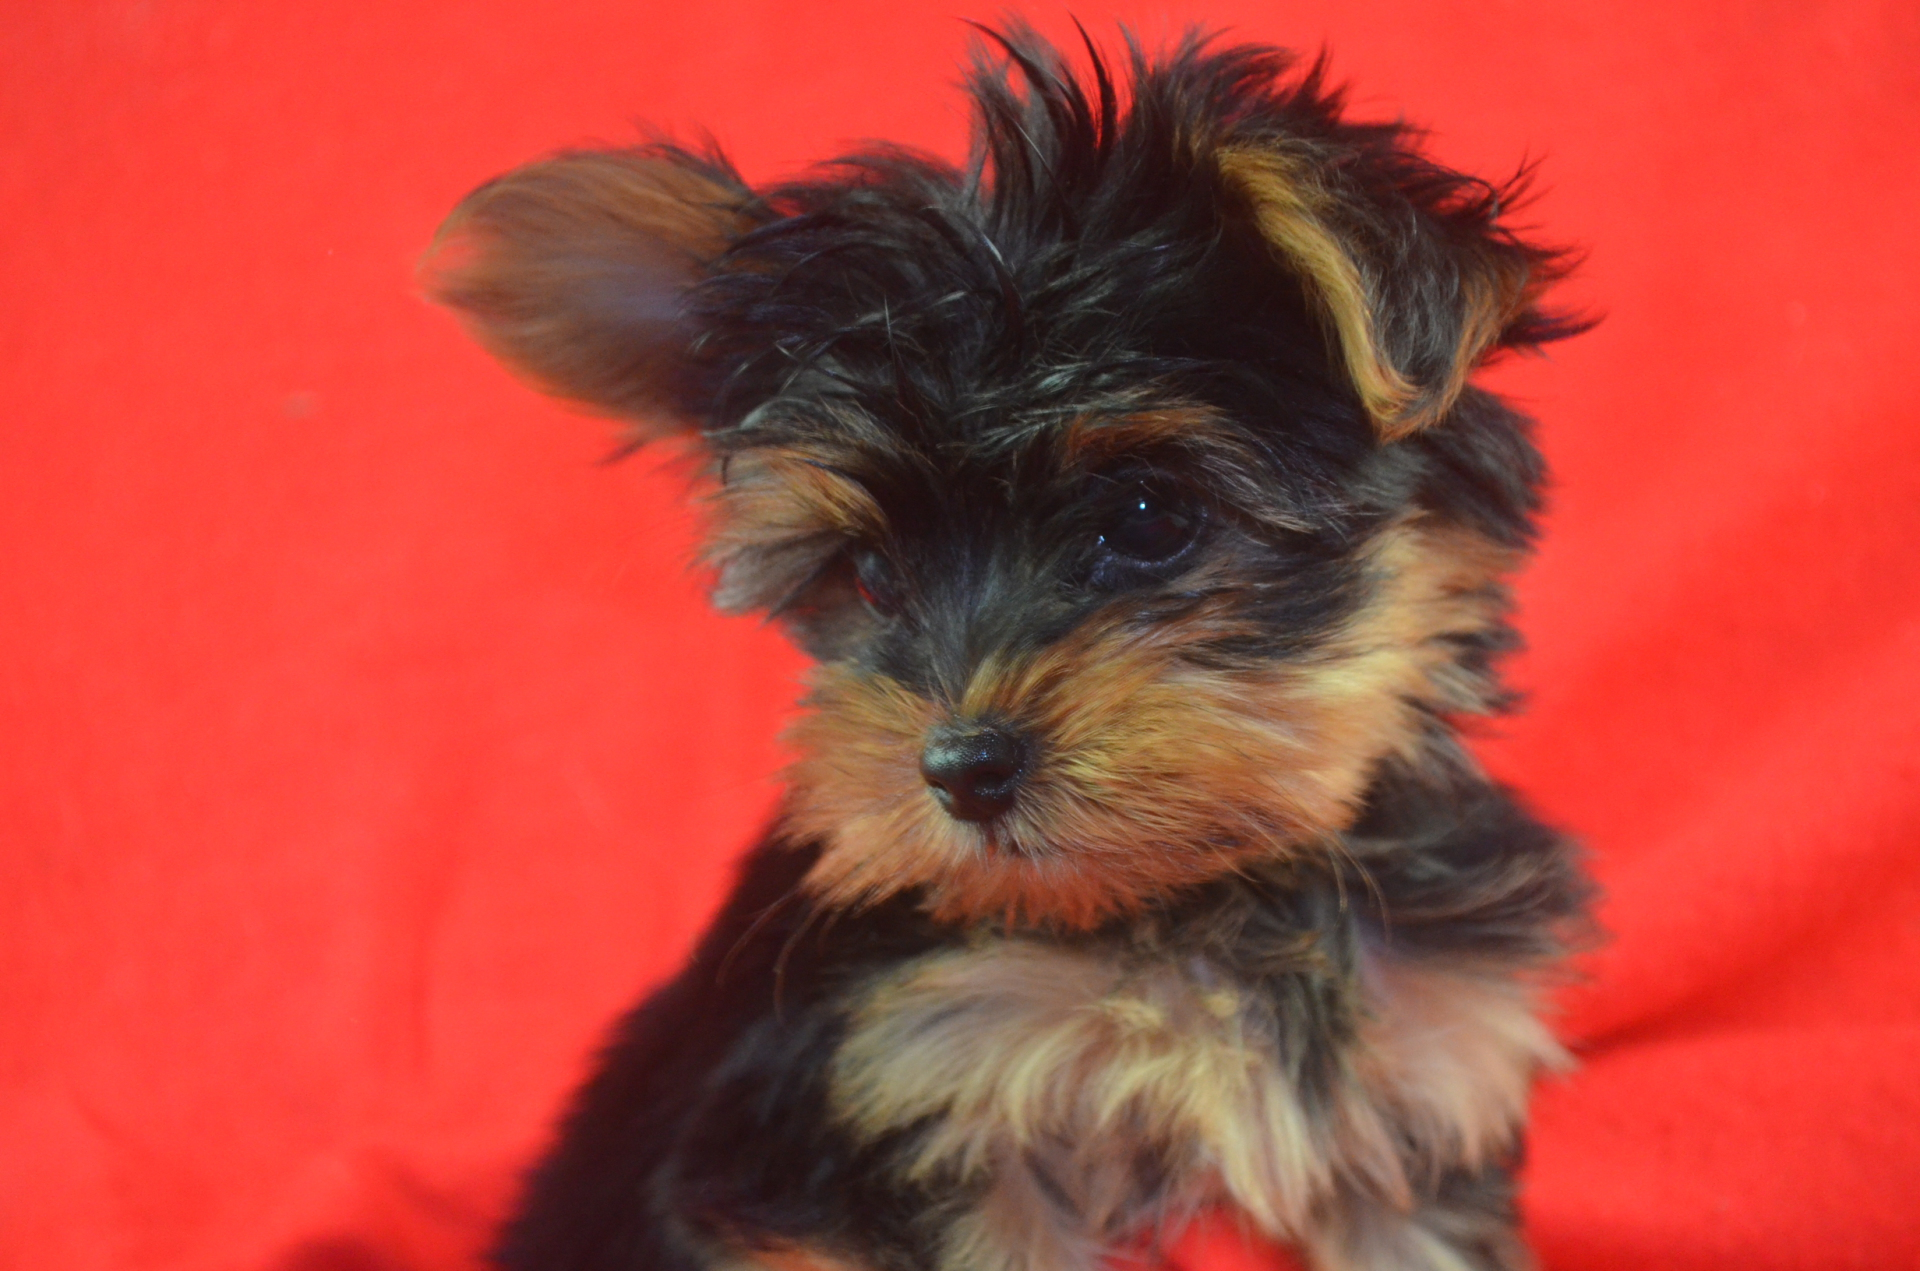 Sold Standard sized Yorkie puppy